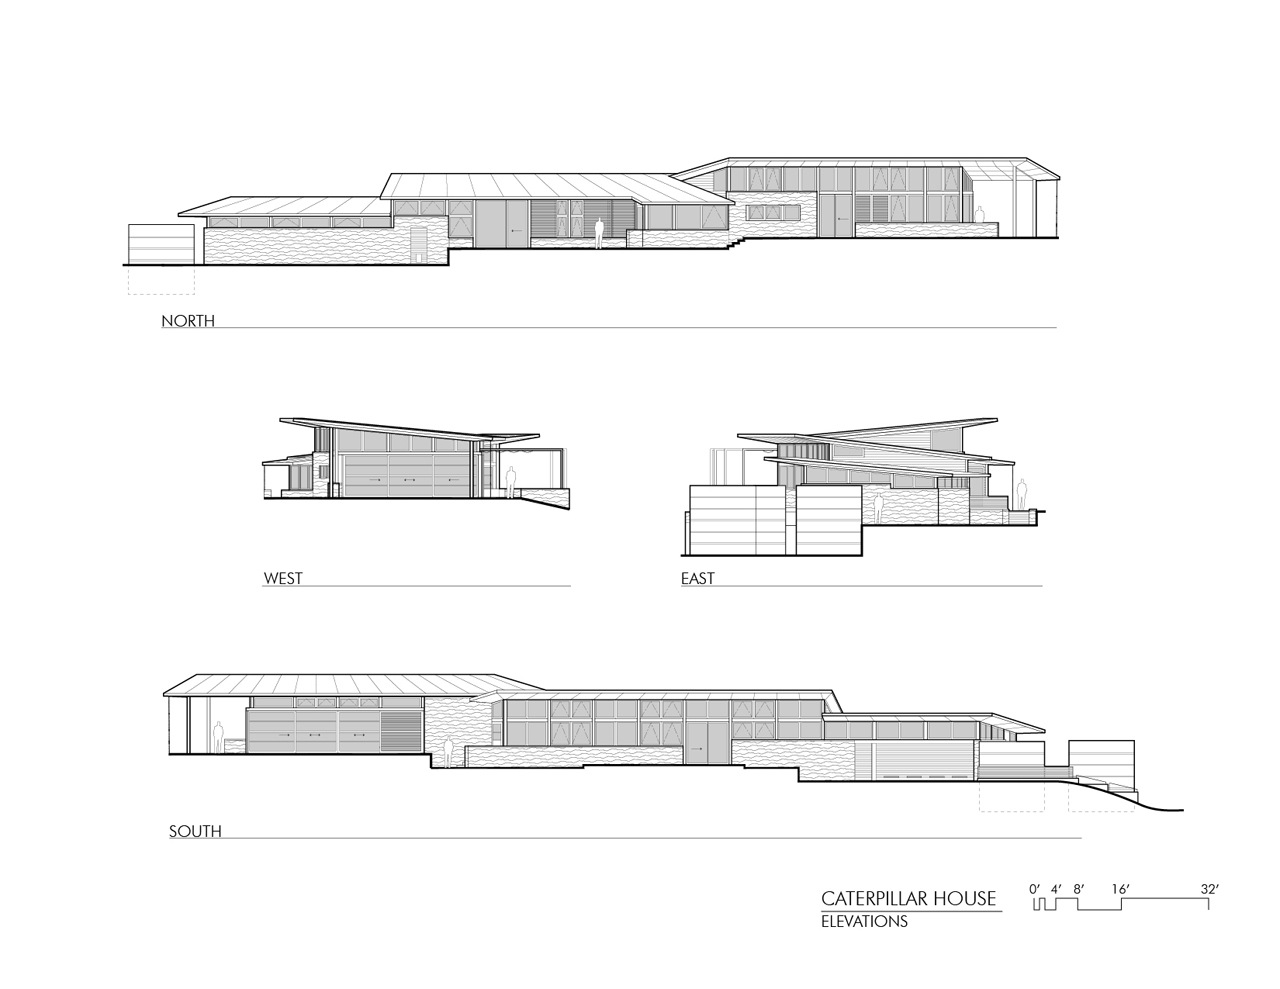 Elevations, Caterpillar House in Carmel, California by Feldman Architecture